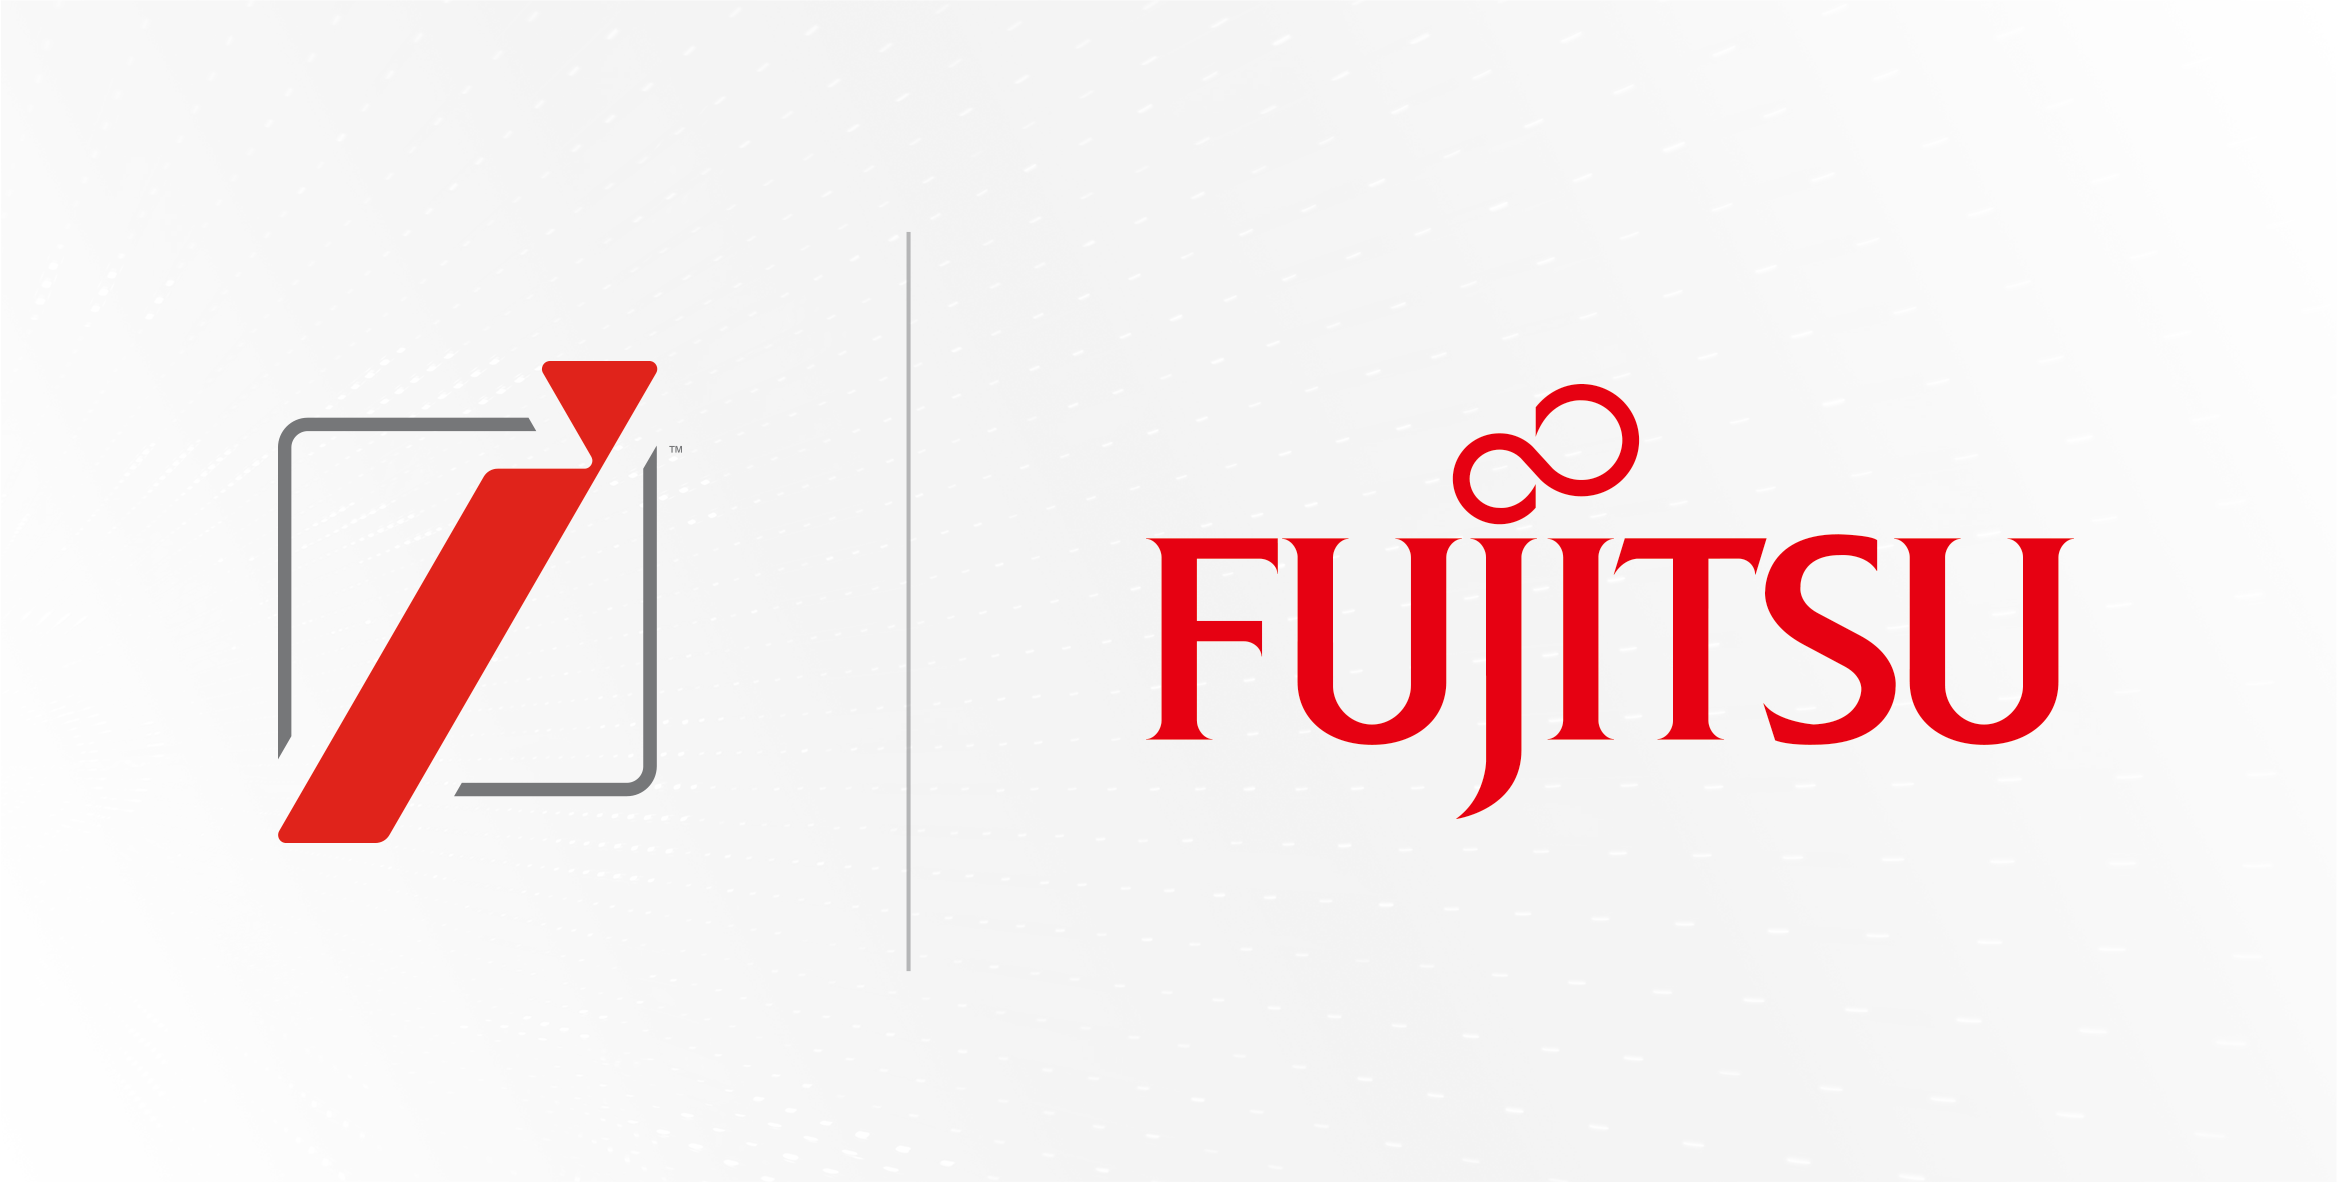 ImageWare and Fujitsu Expand their Partnership to Secure Billions of IoT Devices